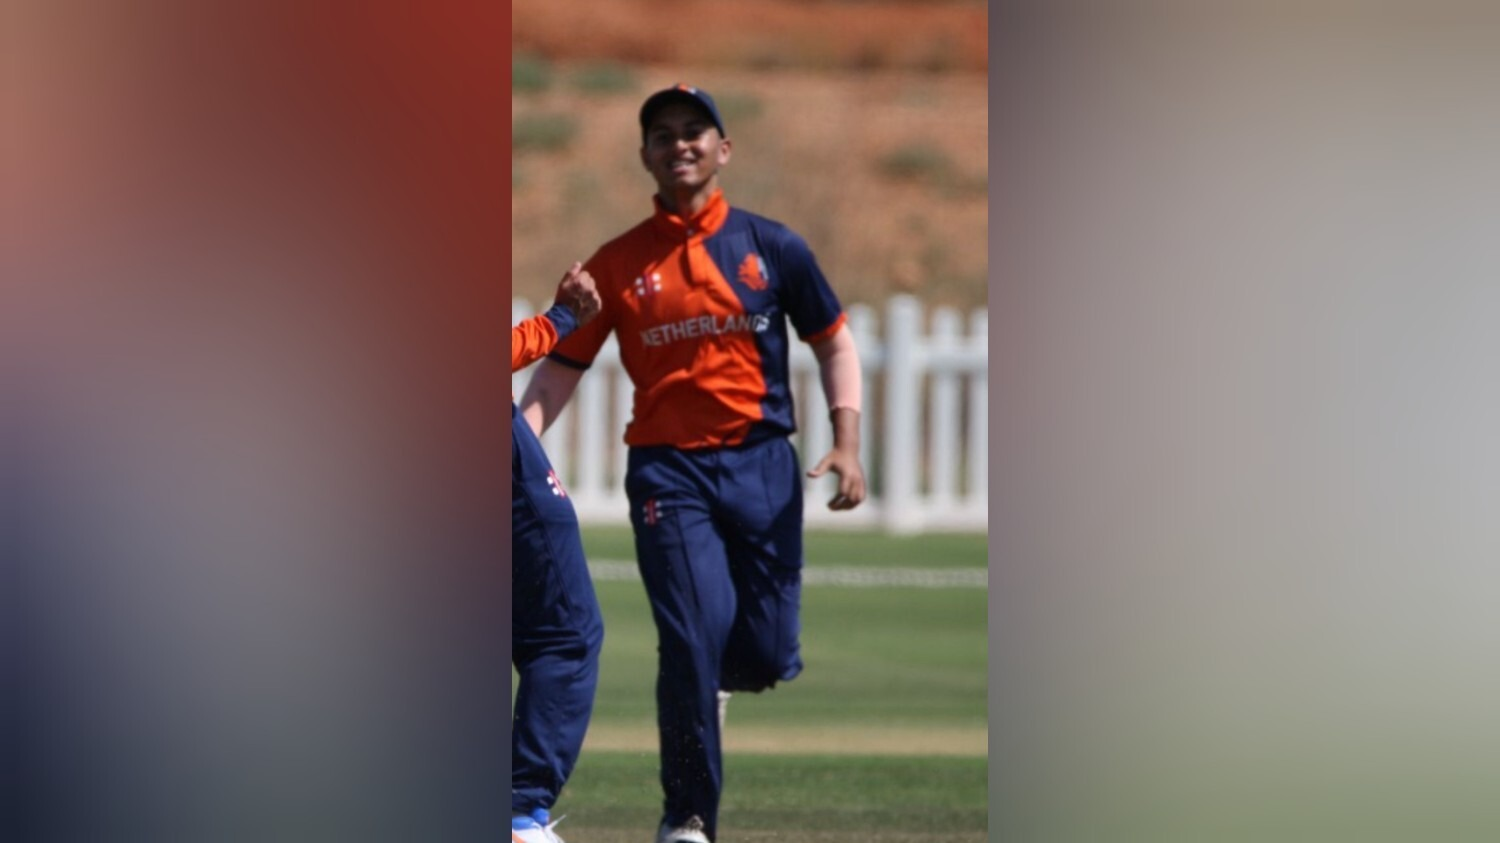 Dasgupta has been playing for VRA, Amsterdam, and the Under-19 Dutch Cricket team